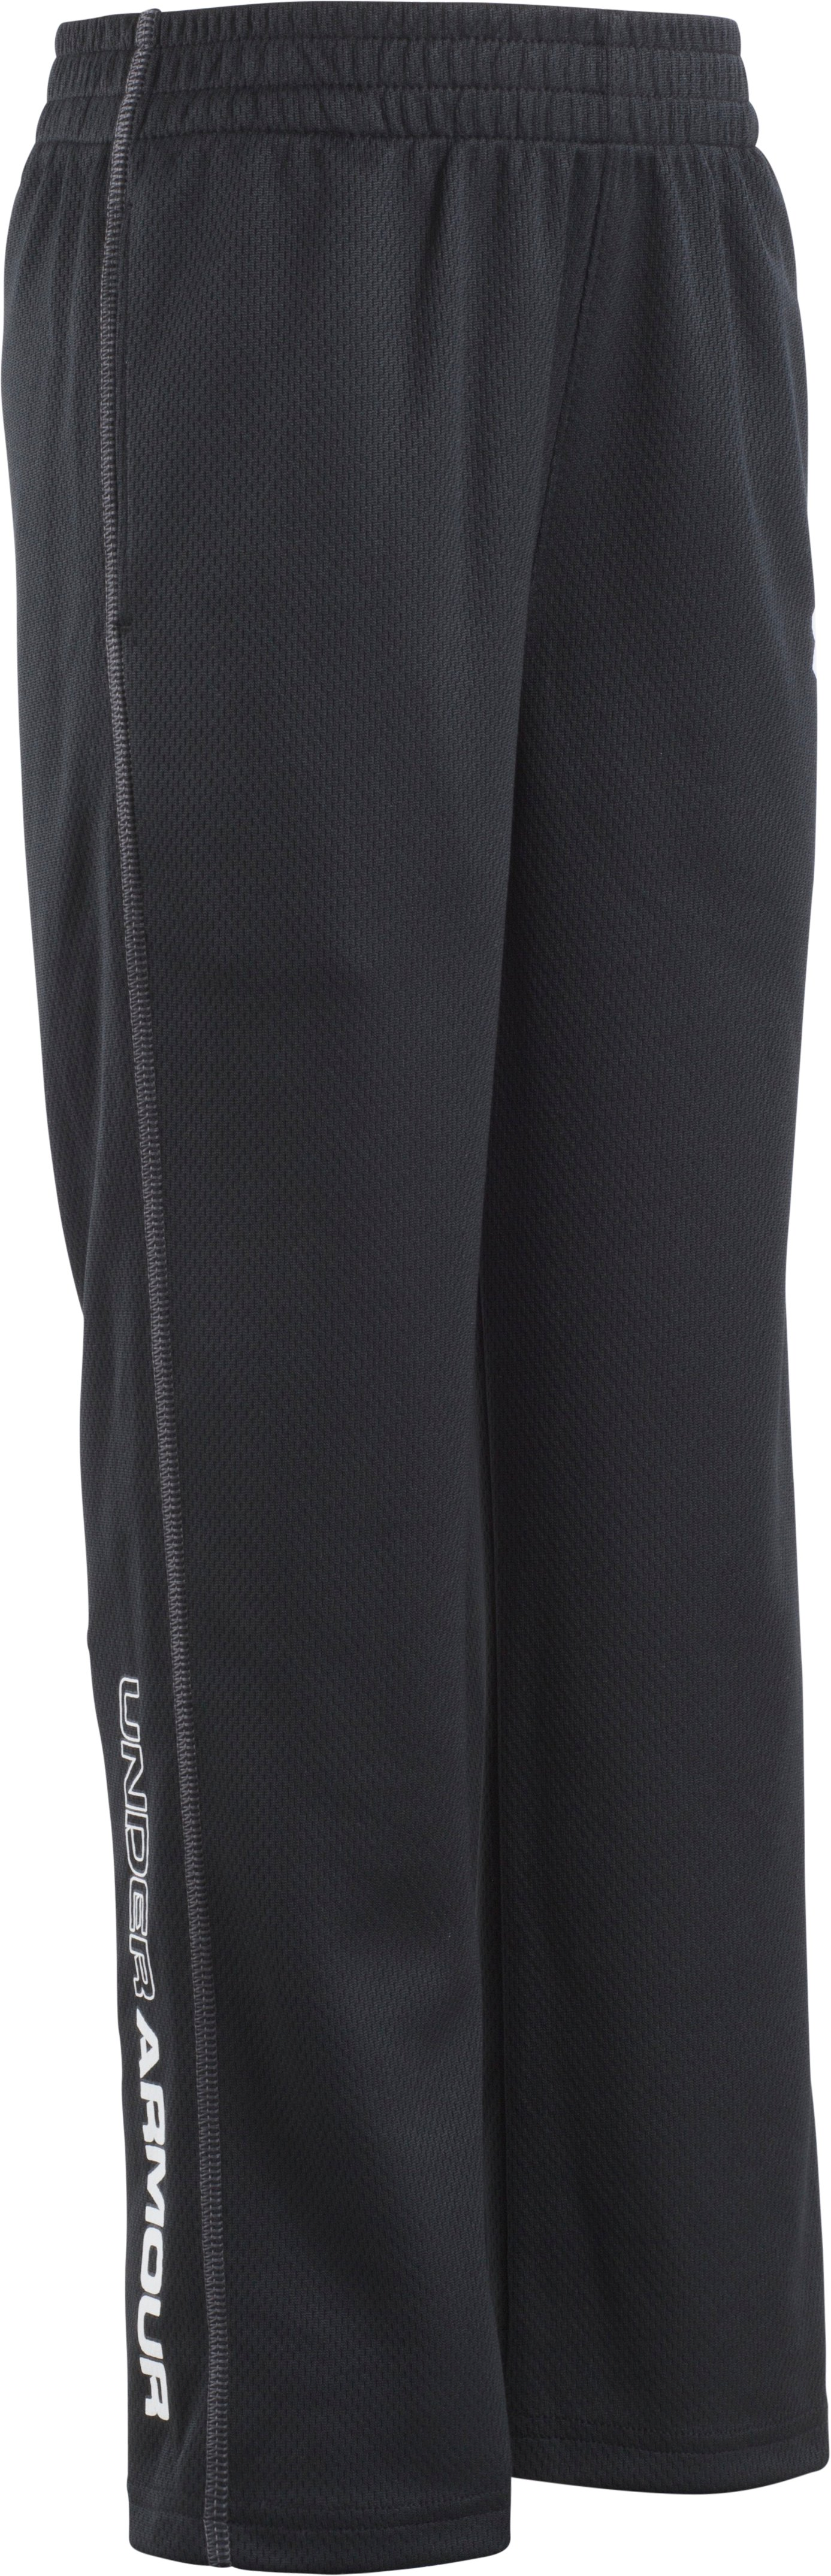 Boys' Pre-School UA Root Pants, Black